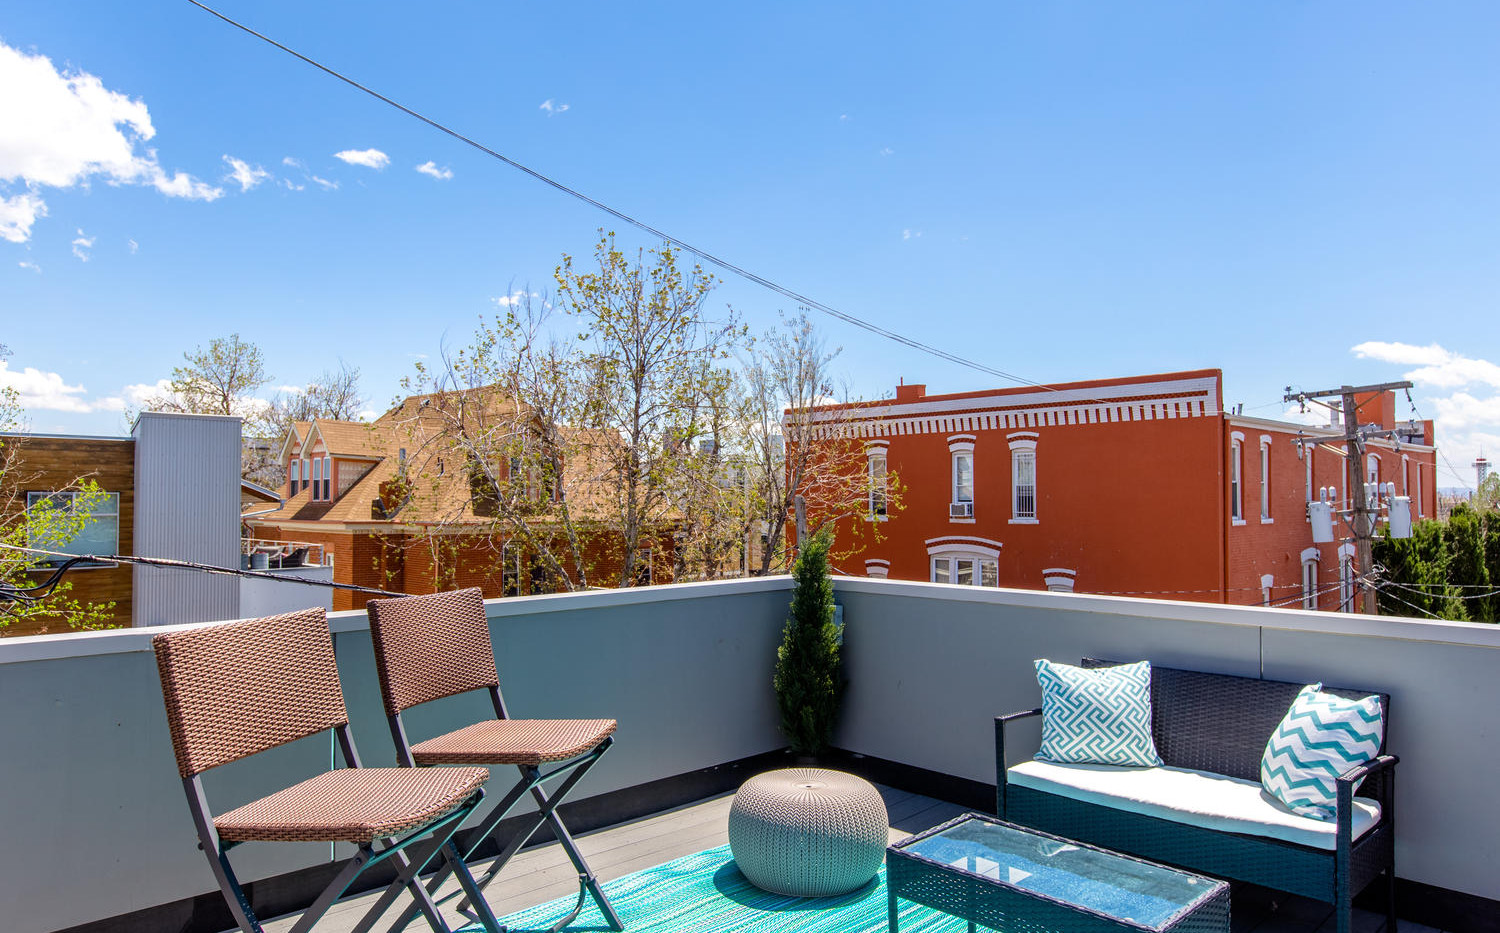 2218 W 33rd Avenue-large-031-030-Rooftop